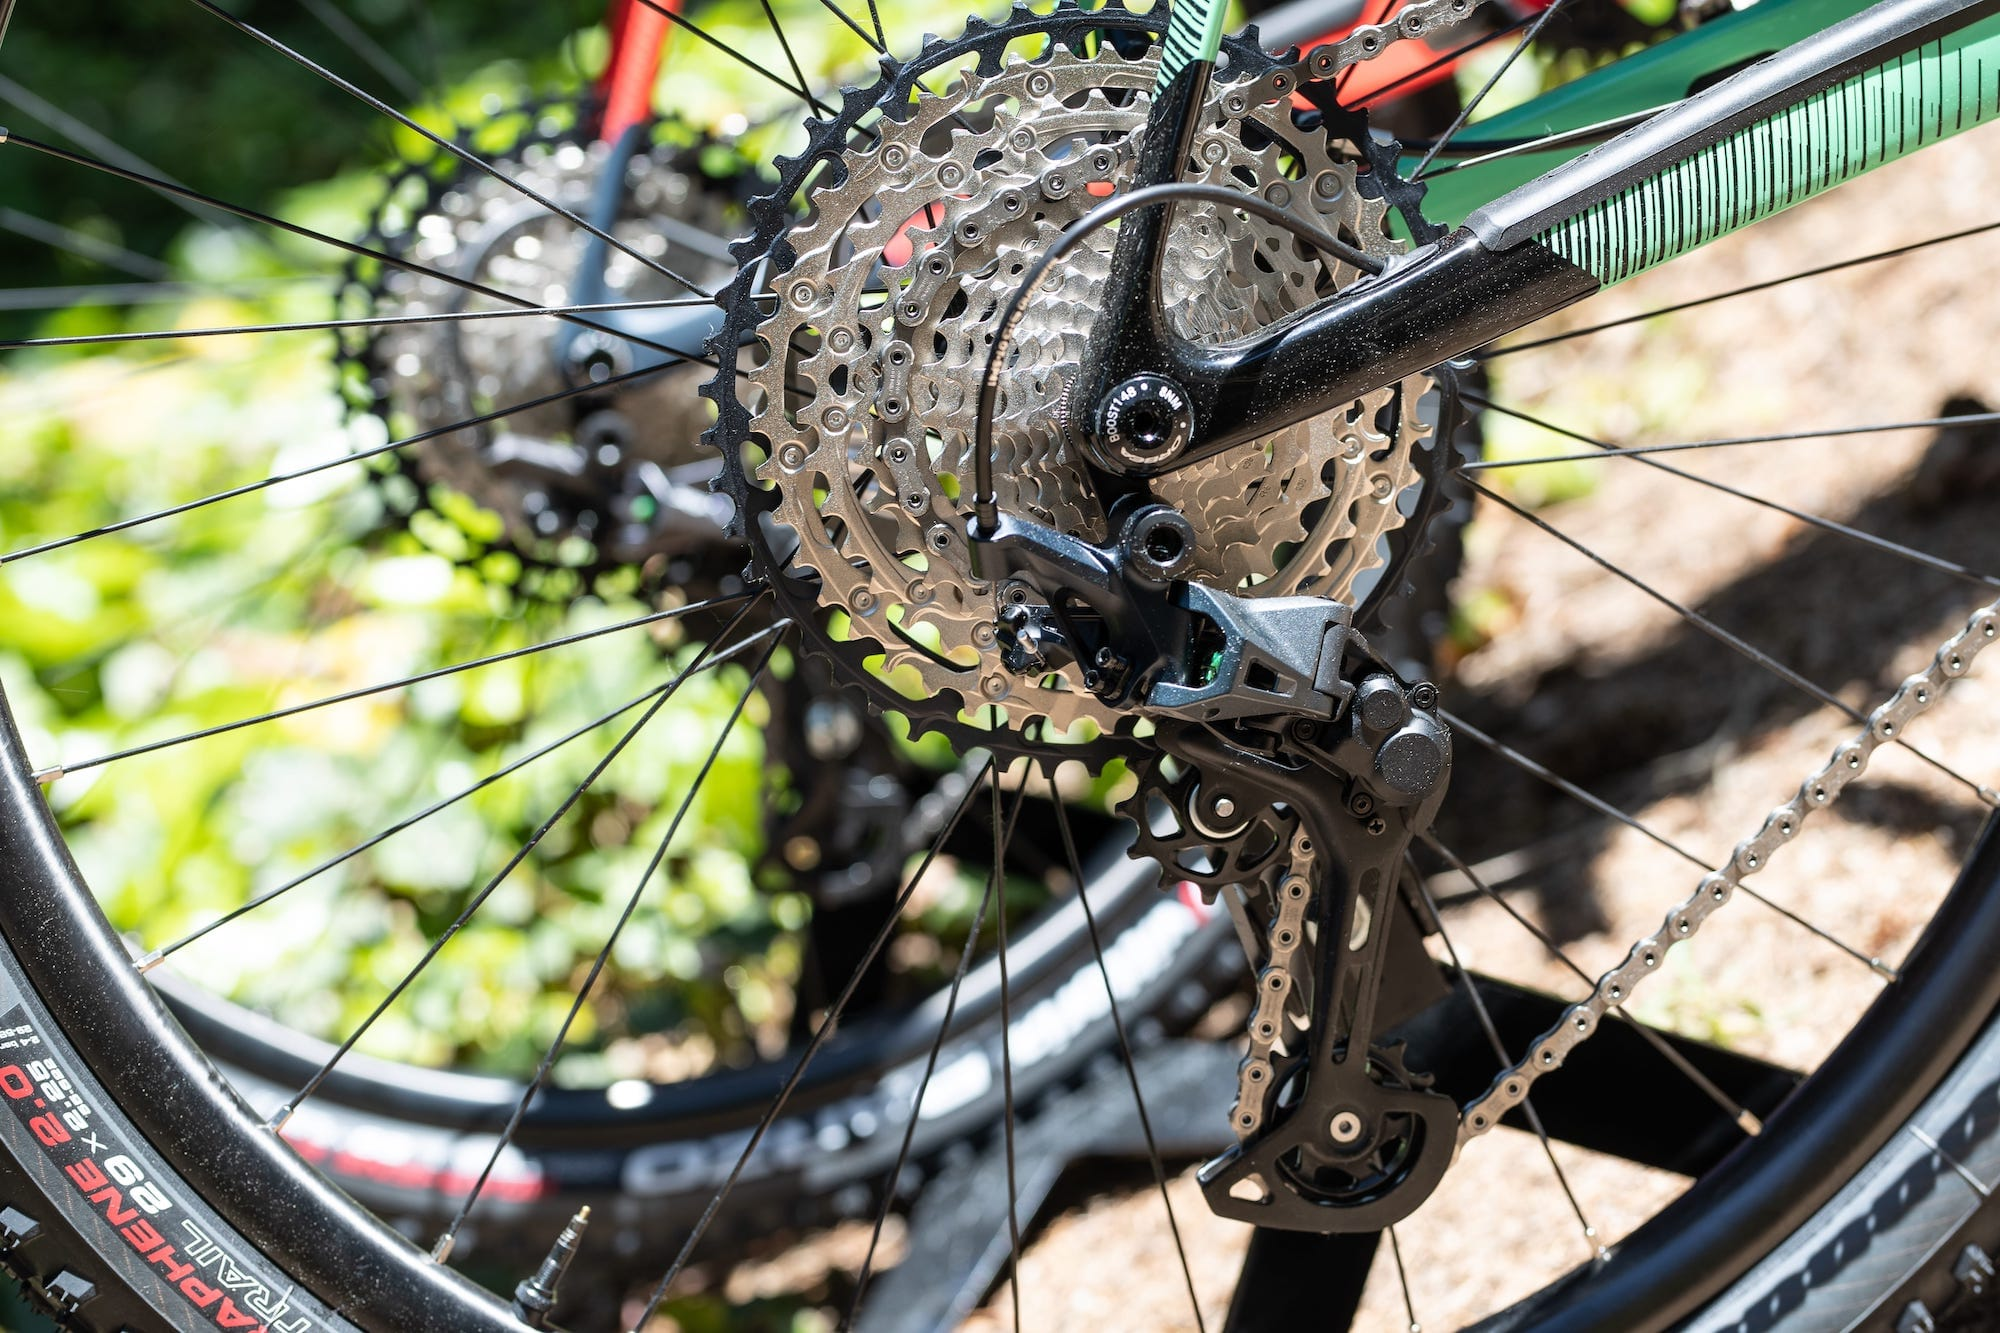 Shimano Releases 12-Speed Deore XT M8100 & SLX M7100 Groupsets